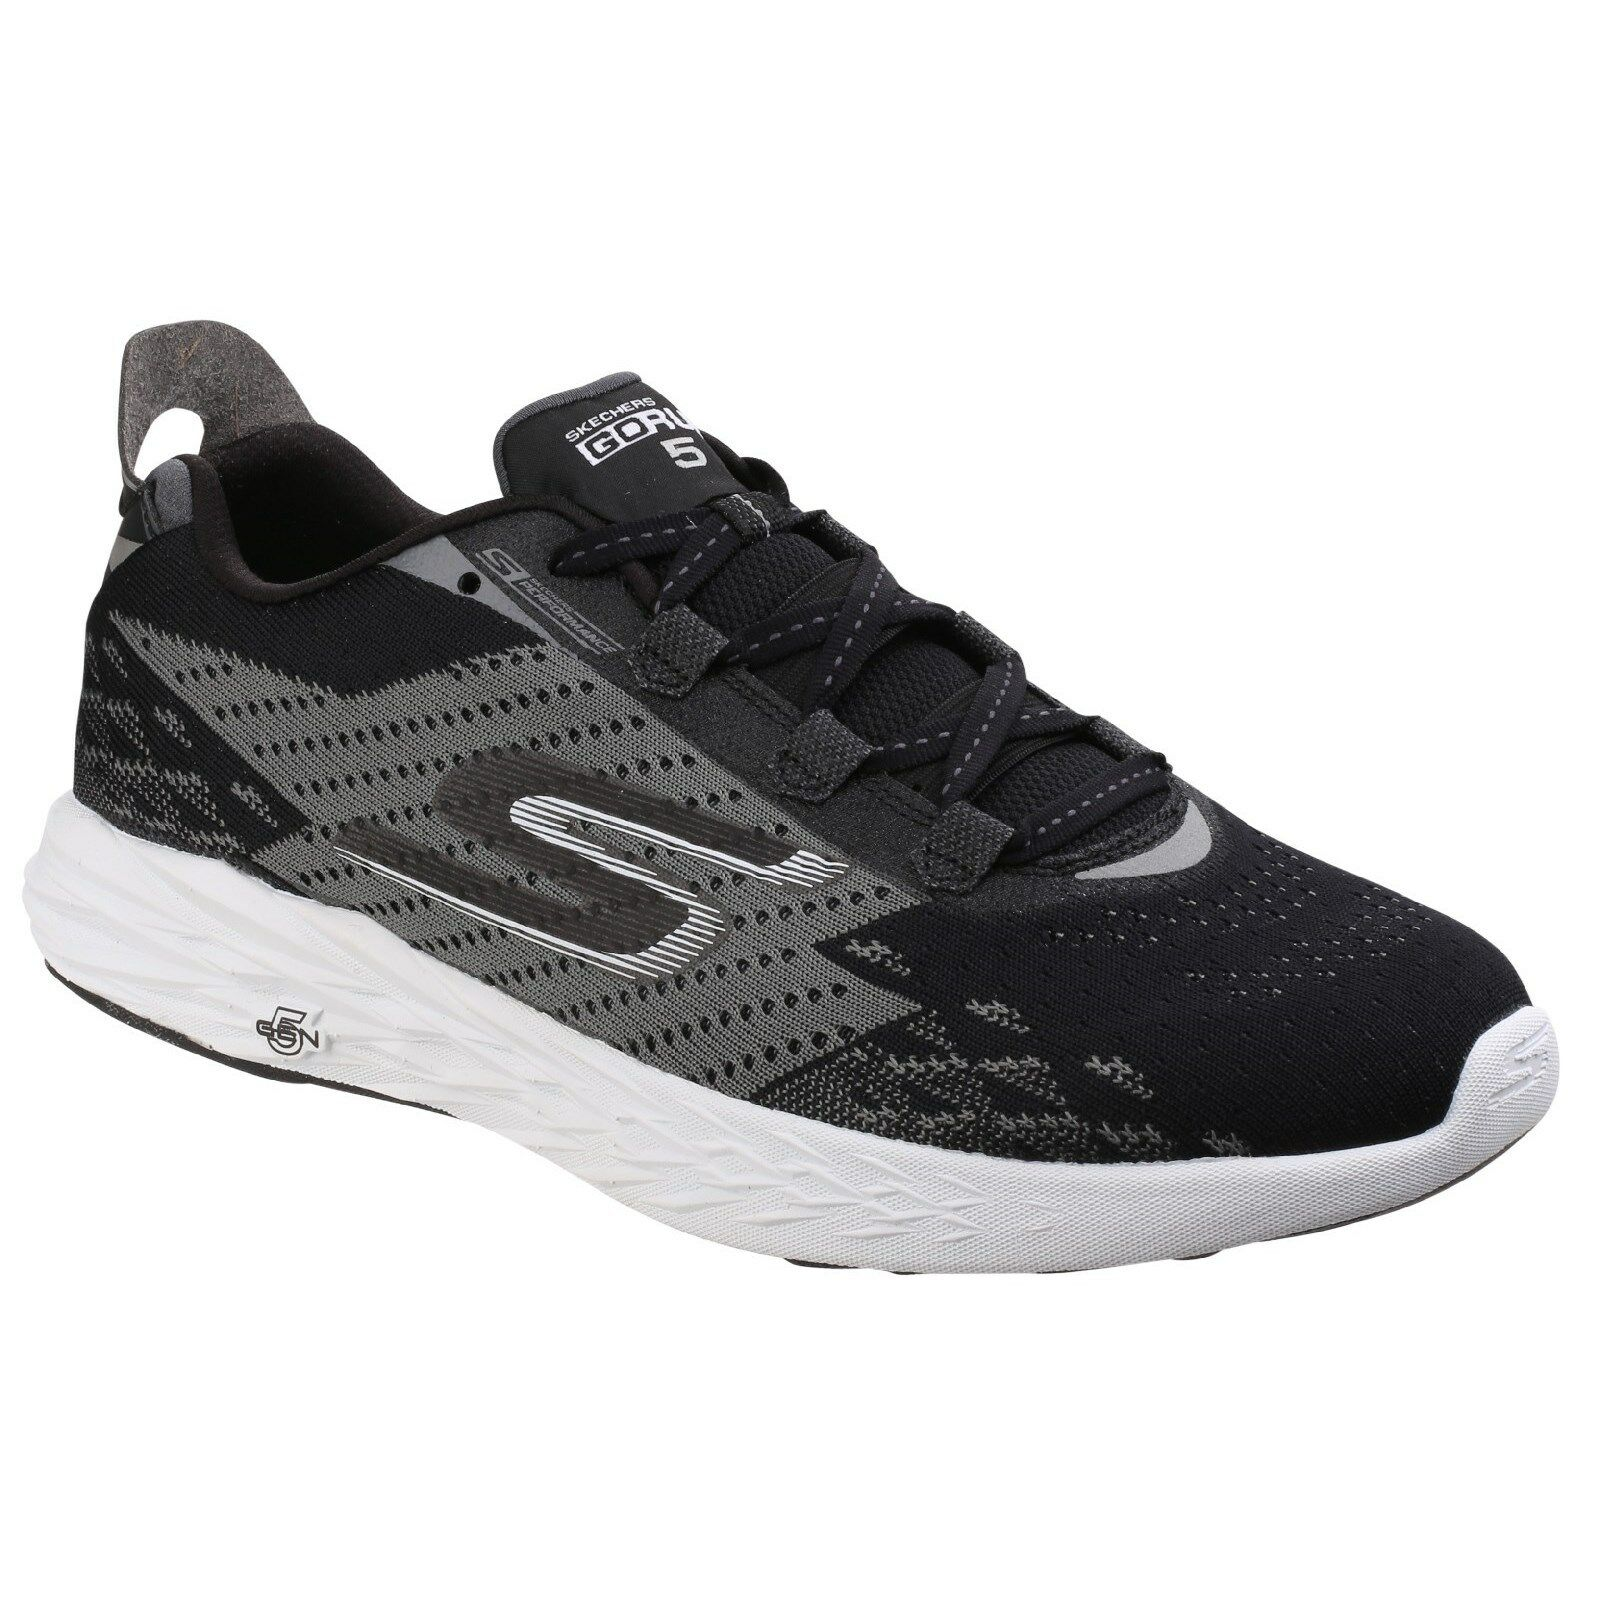 Skechers Go Run 5 Trainers Memory Foam Sports Knit Running Mens Sneakers shoes